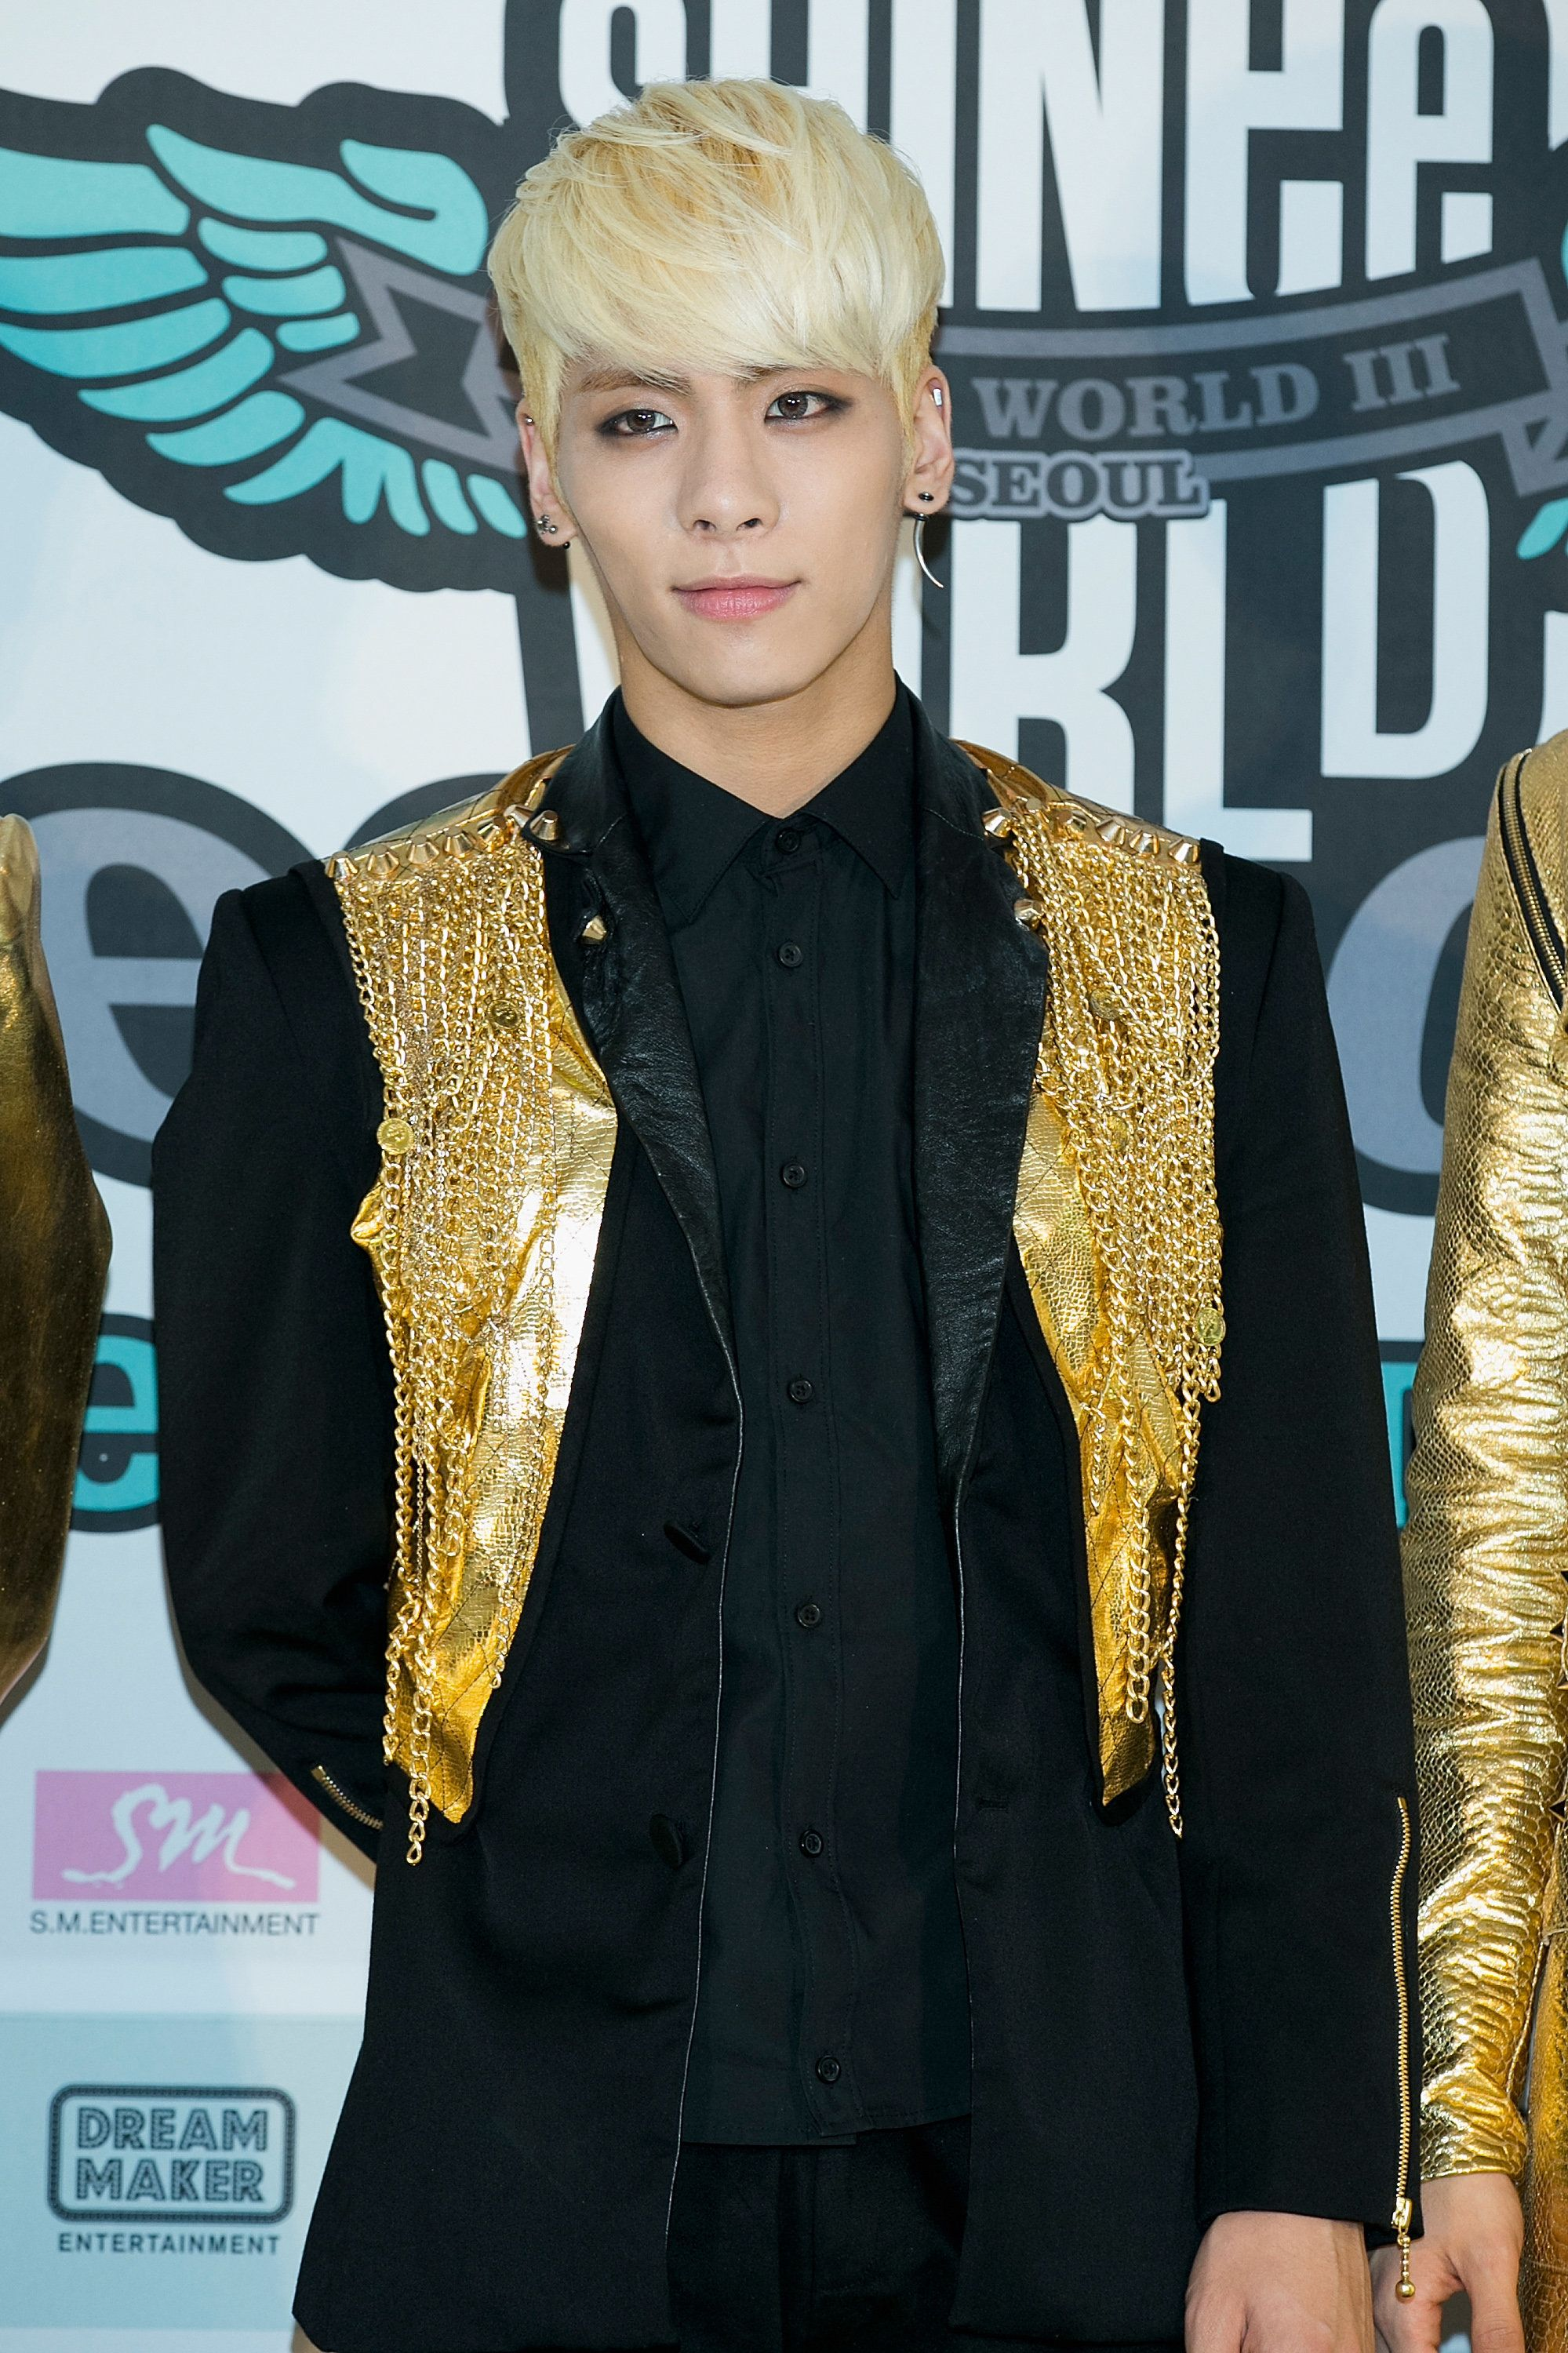 SEOUL, SOUTH KOREA - MARCH 09:  Jonghyun of South Korean boy band SHINee attends the 'SHINee World III' press conference on March 9, 2014 in Seoul, South Korea.  (Photo by Han Myung-Gu/WireImage)